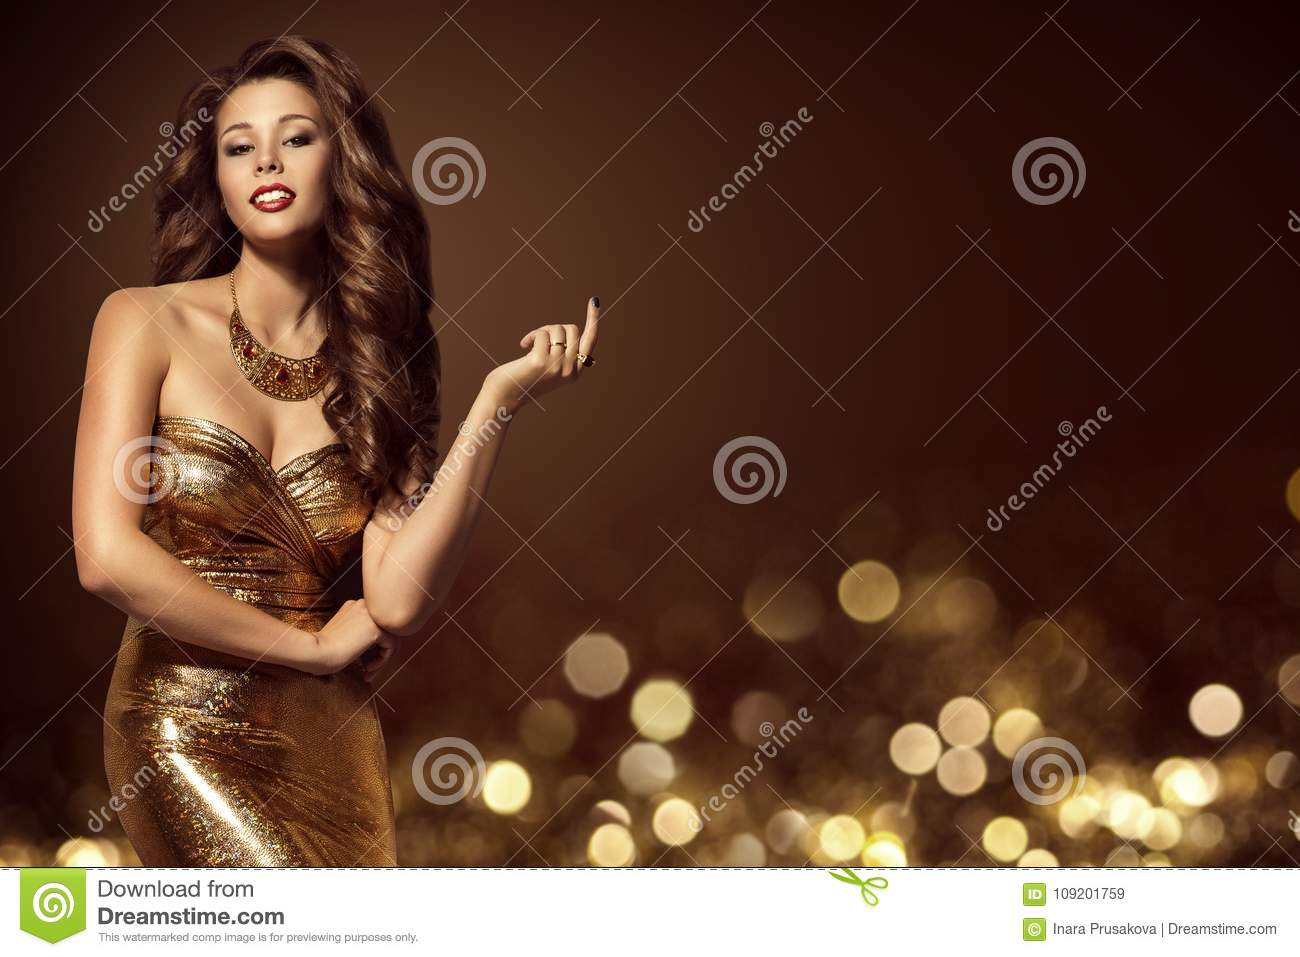 Fashion Model Gold Dress, Elegant Young Woman in Golden Gown